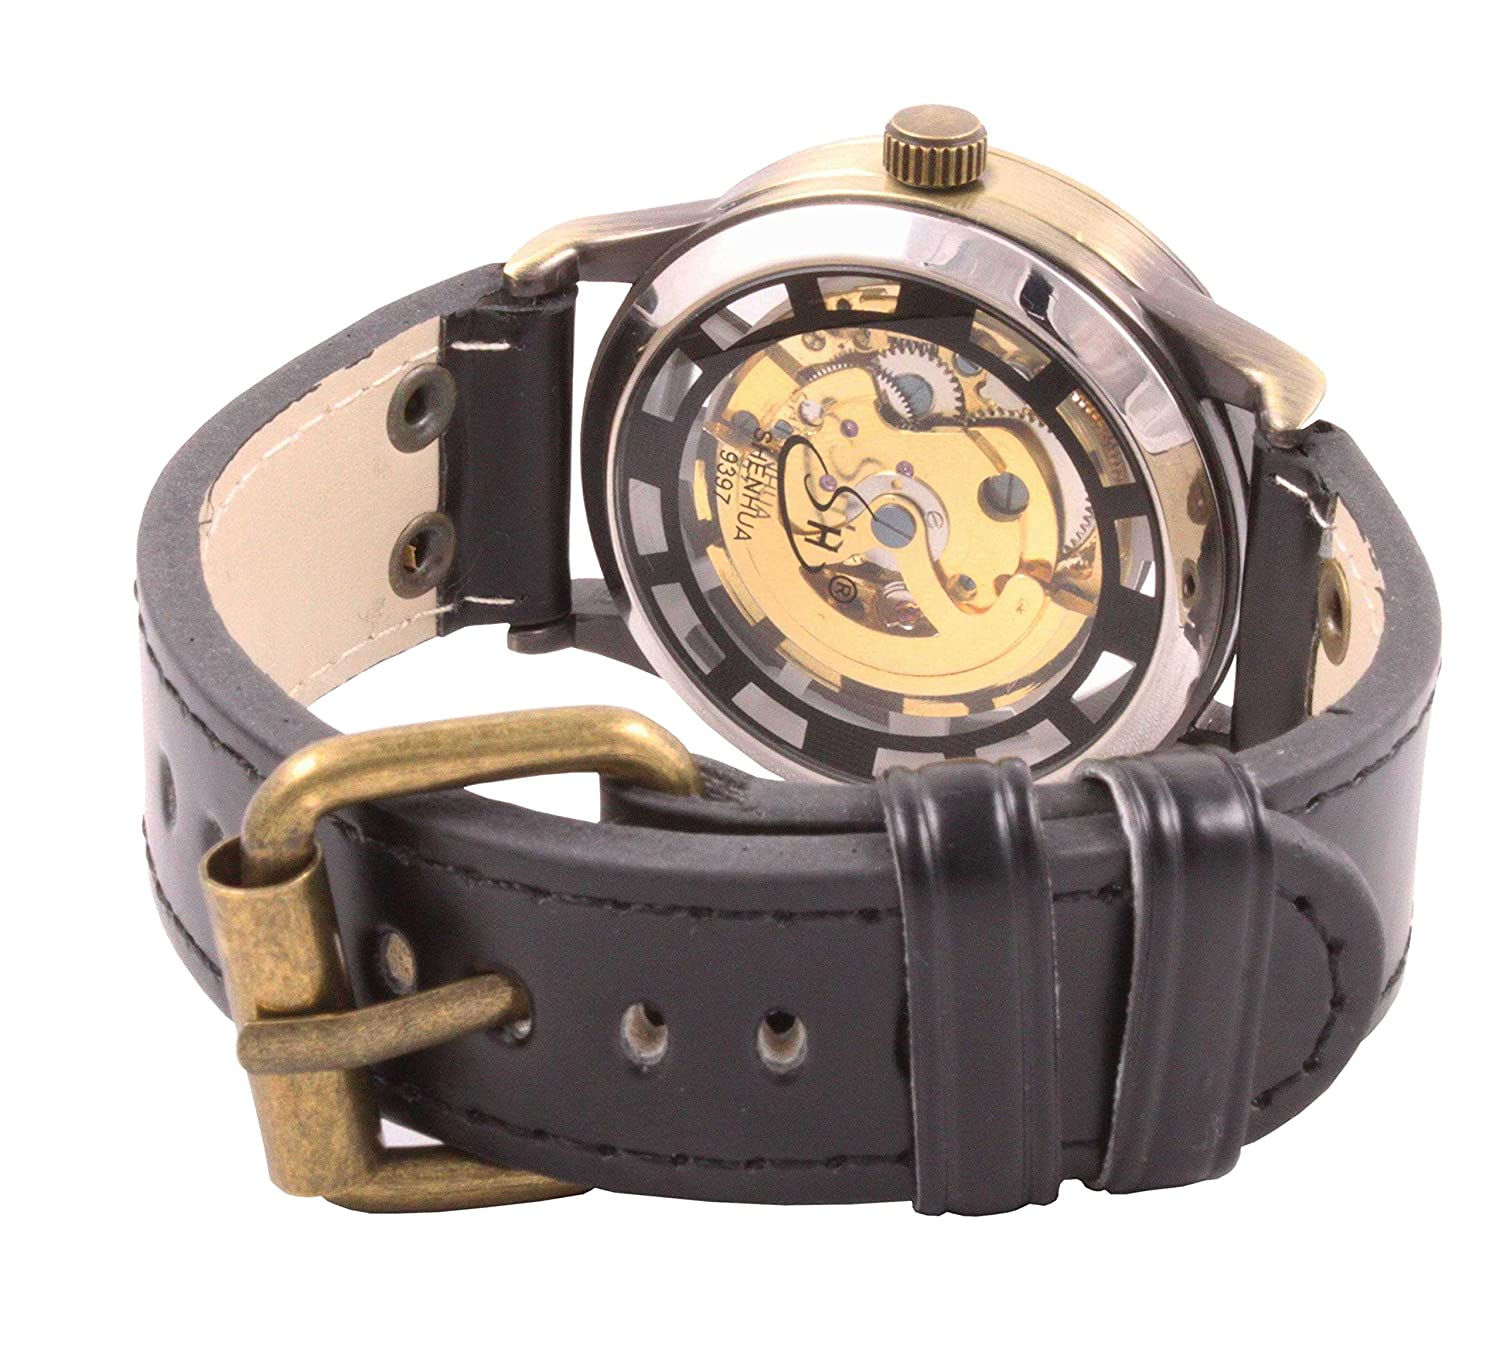 Amazon.com: ShoppeWatch Mens Automatic Mechanical Watch Steampunk Skeleton Dial Leather Band AMW-161: Watches